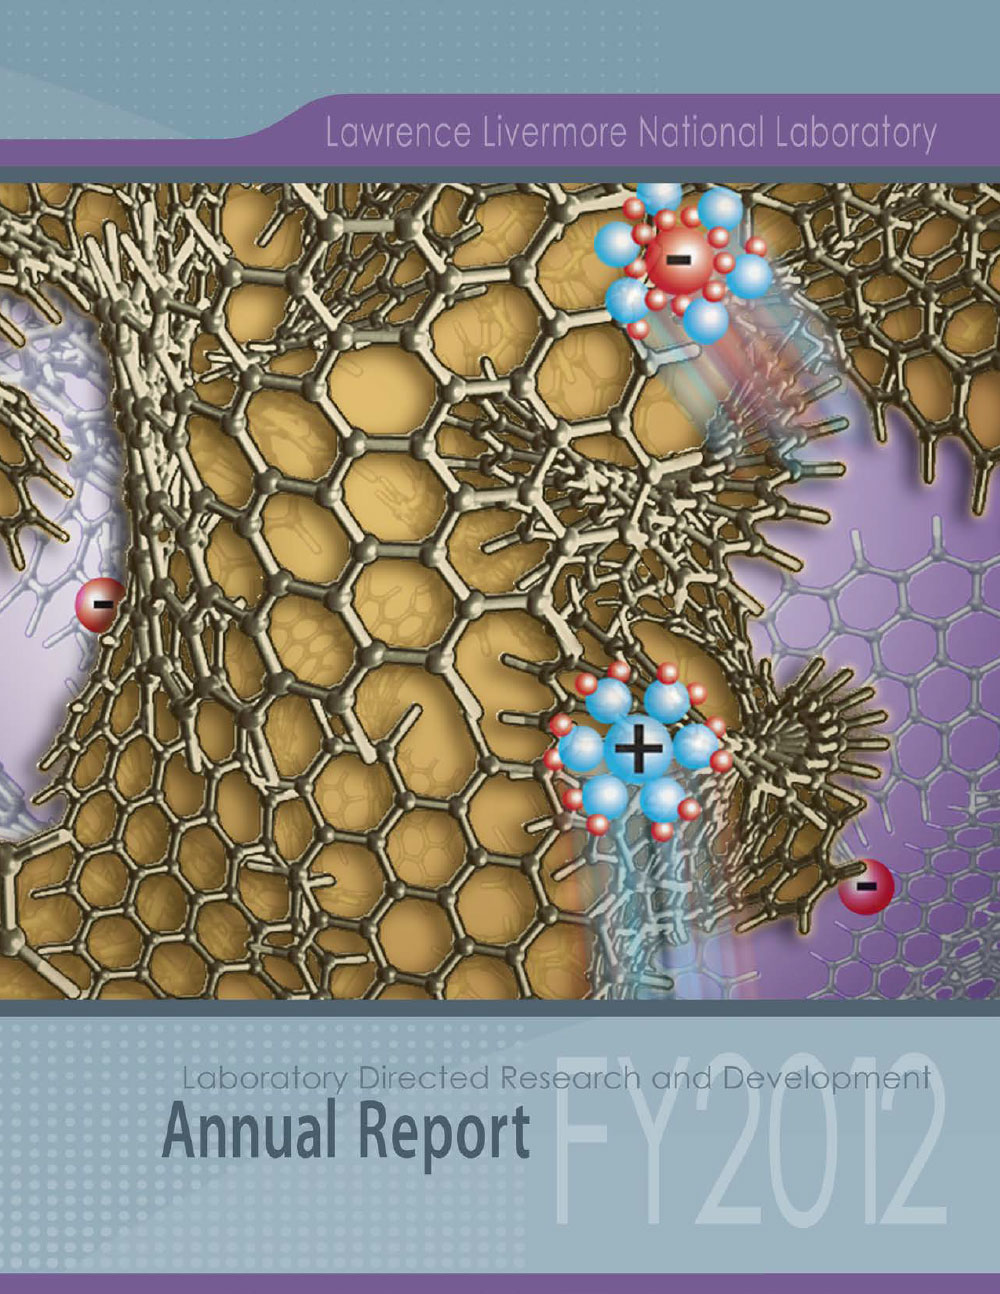 CoverofLLNLFY2012LDRD-AnnualReport